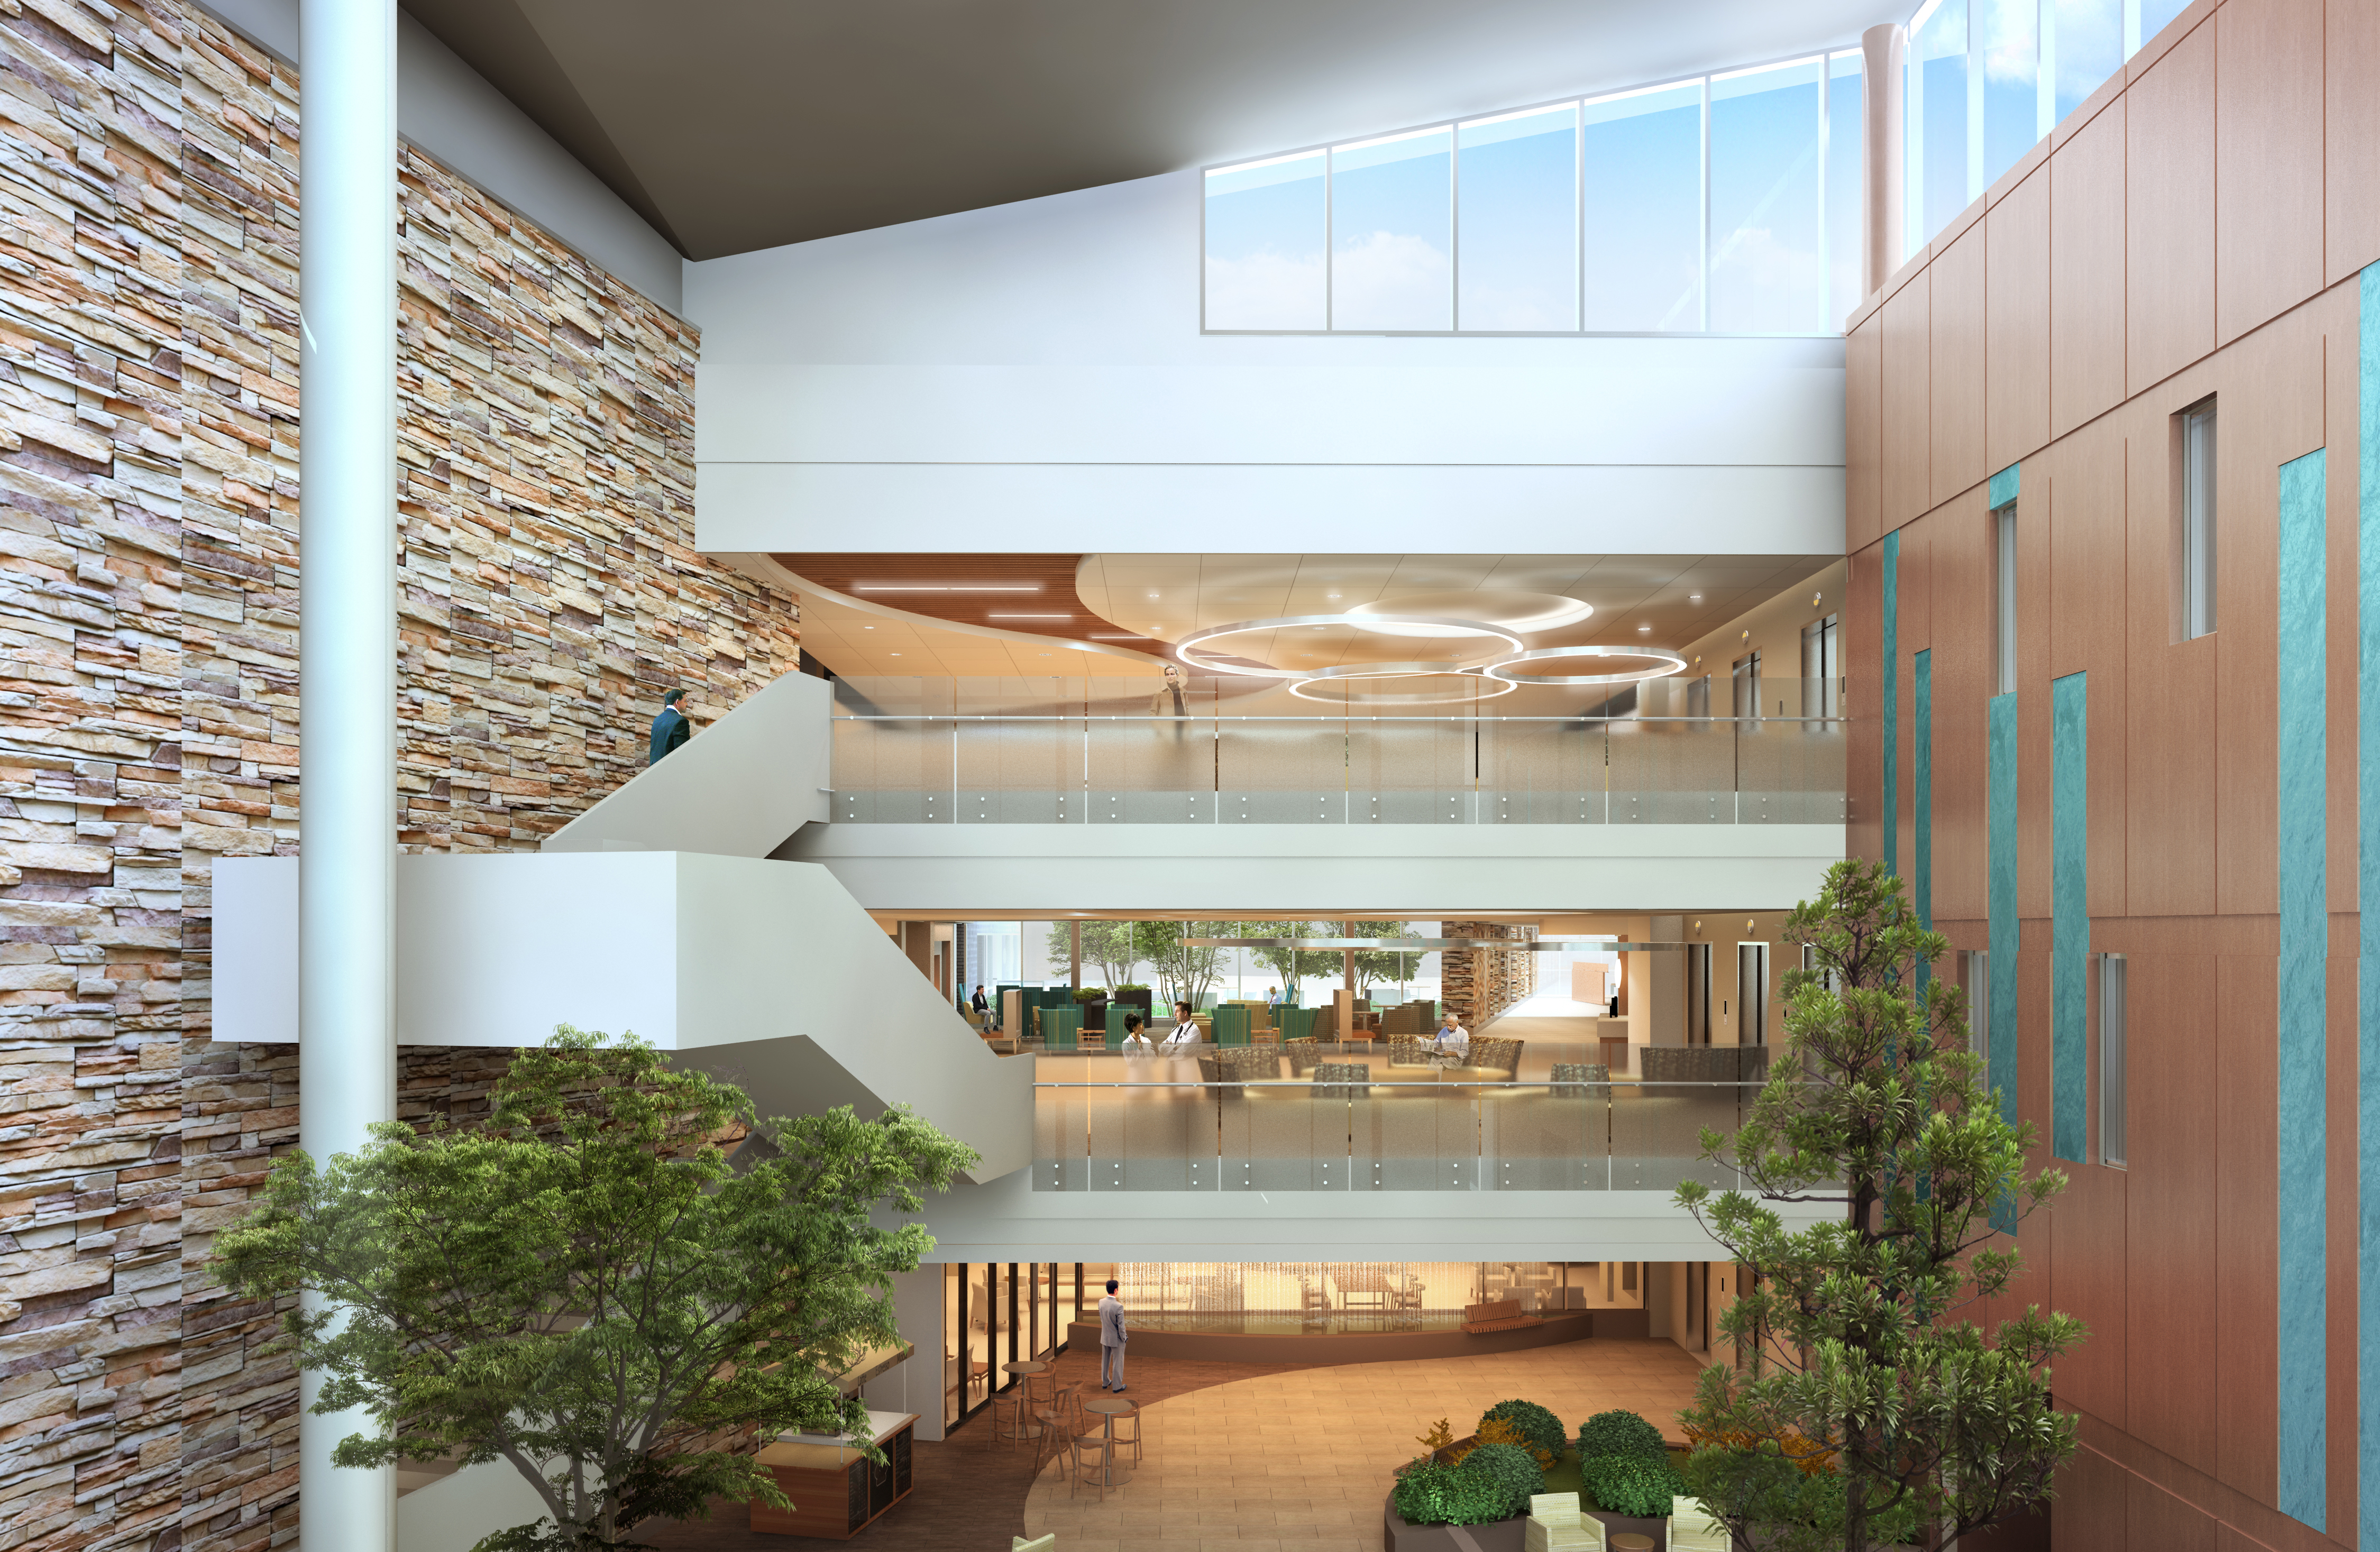 2018 Design Showcase Honorable Mention: Campus Upgrade